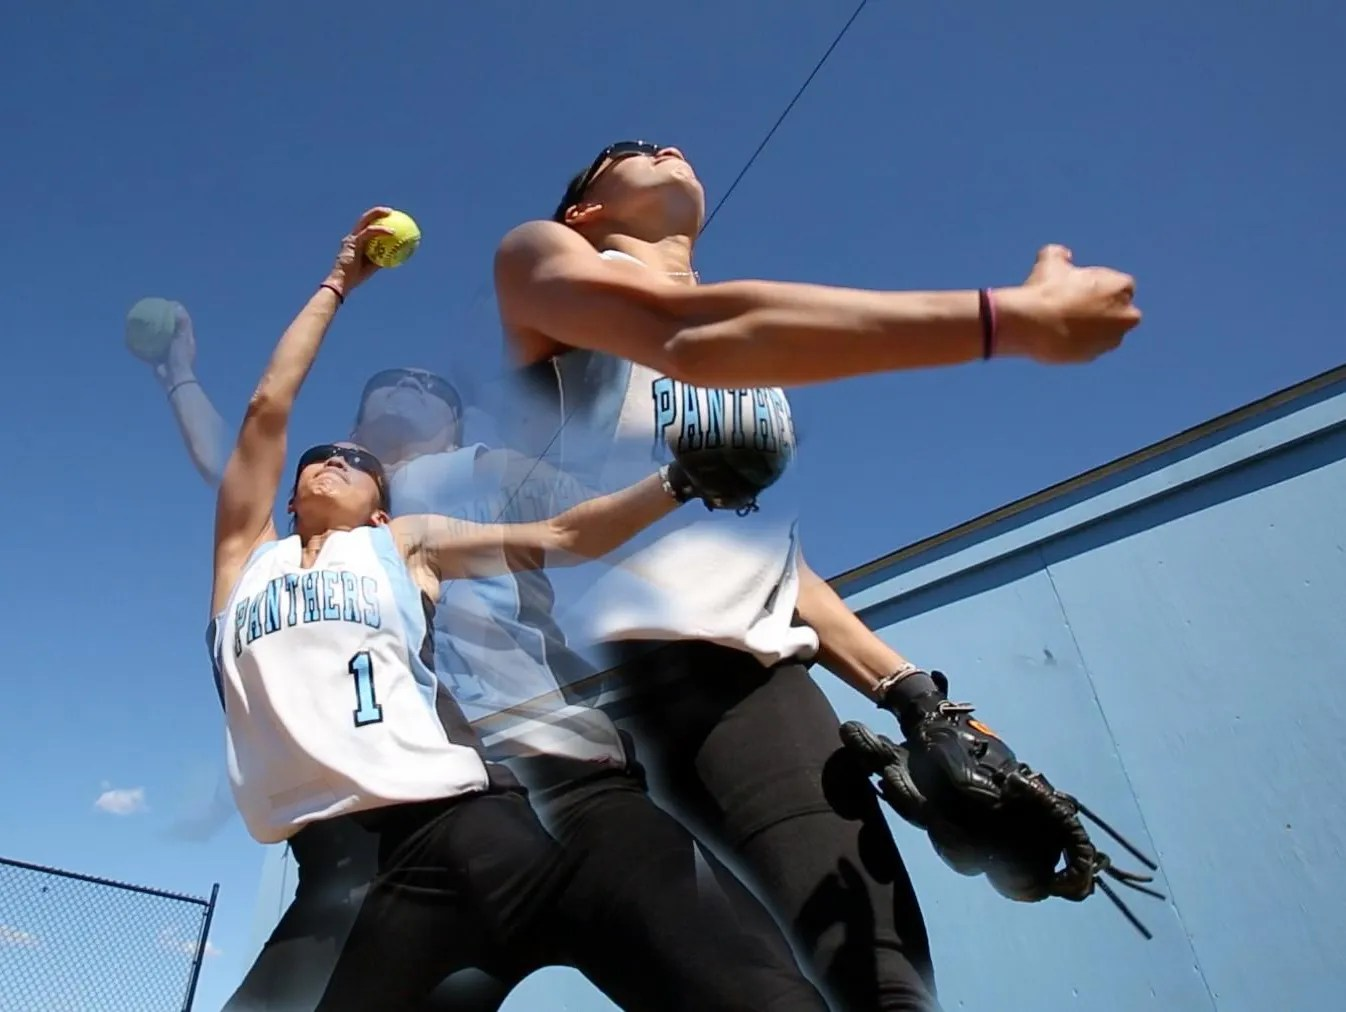 Softball pitchers could face arm injury due to overuse ...